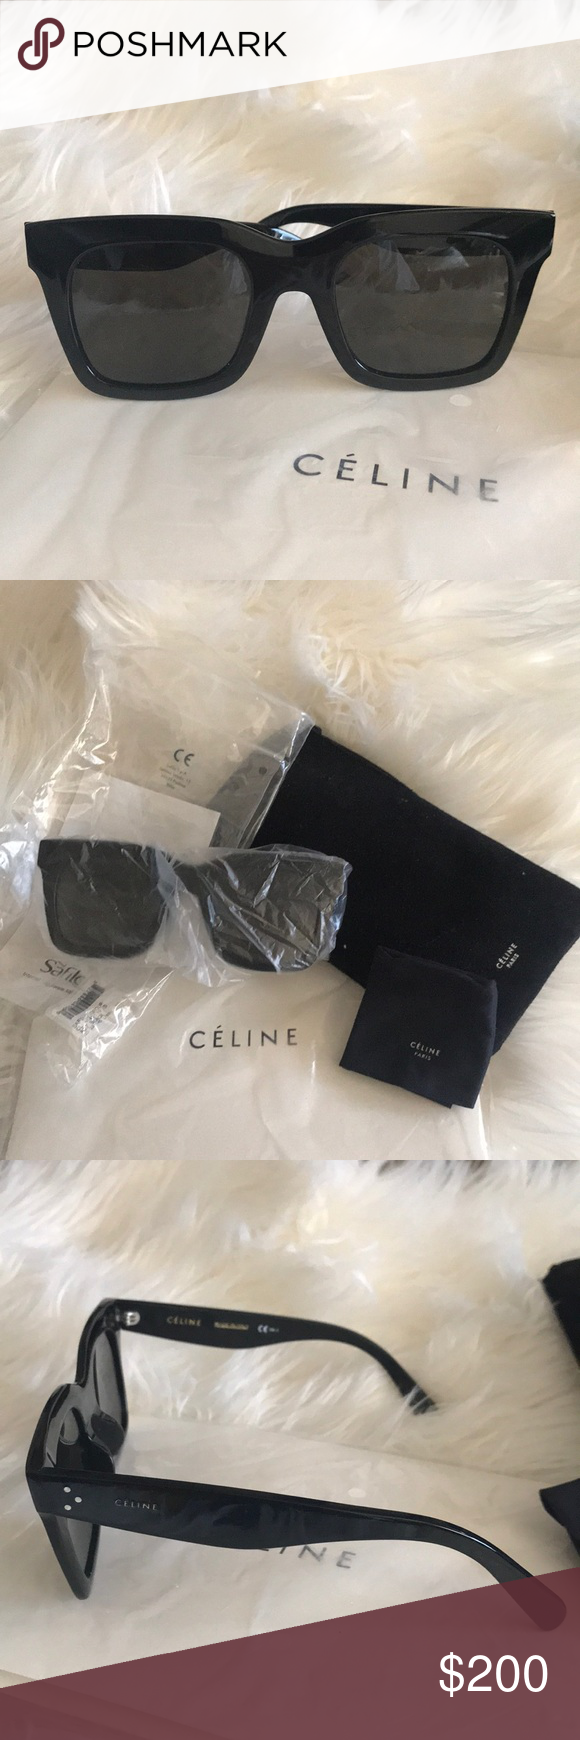 9e33ce0f465d CELINE Luca Sunglasses Black CL 41411 F/S Brand new never worn. Nice  classic style that can be worn everyday. Adds a bold statement to any look.